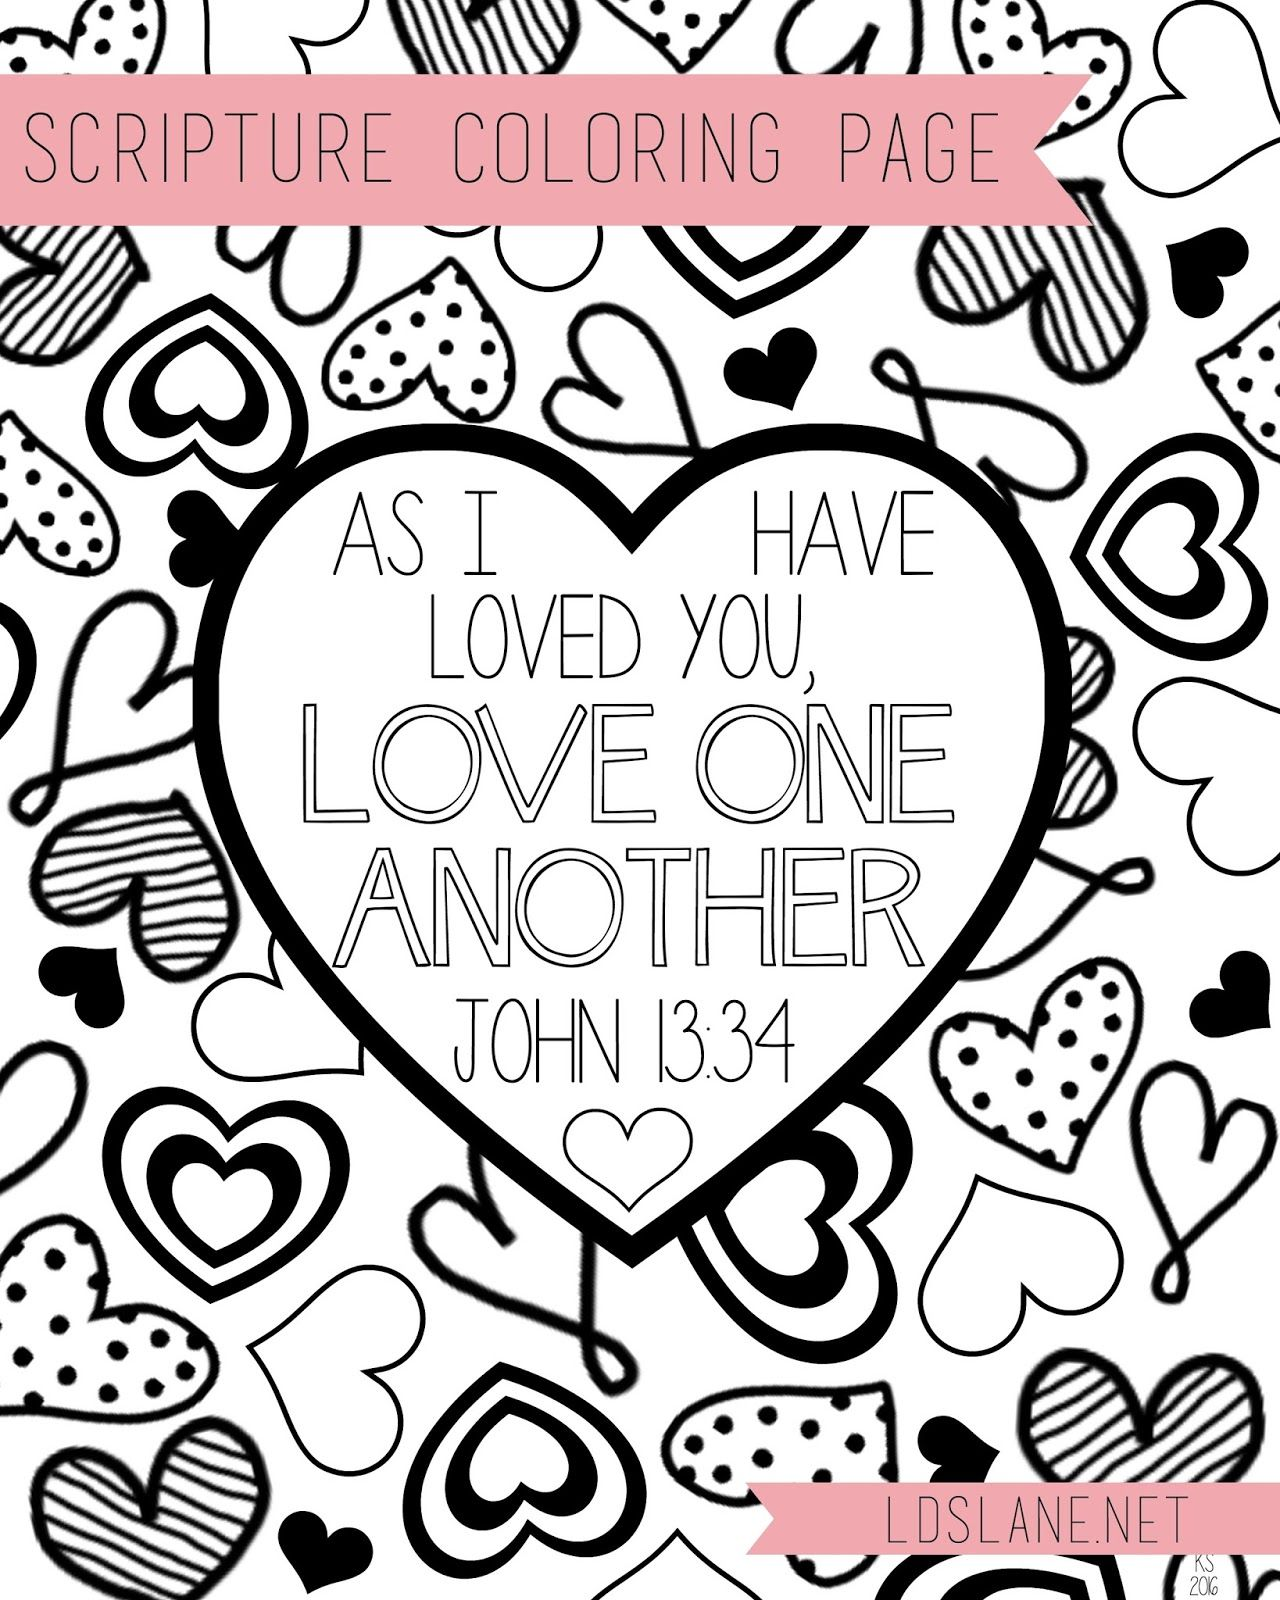 Scripture Coloring Page: Love One Another - Free Print At